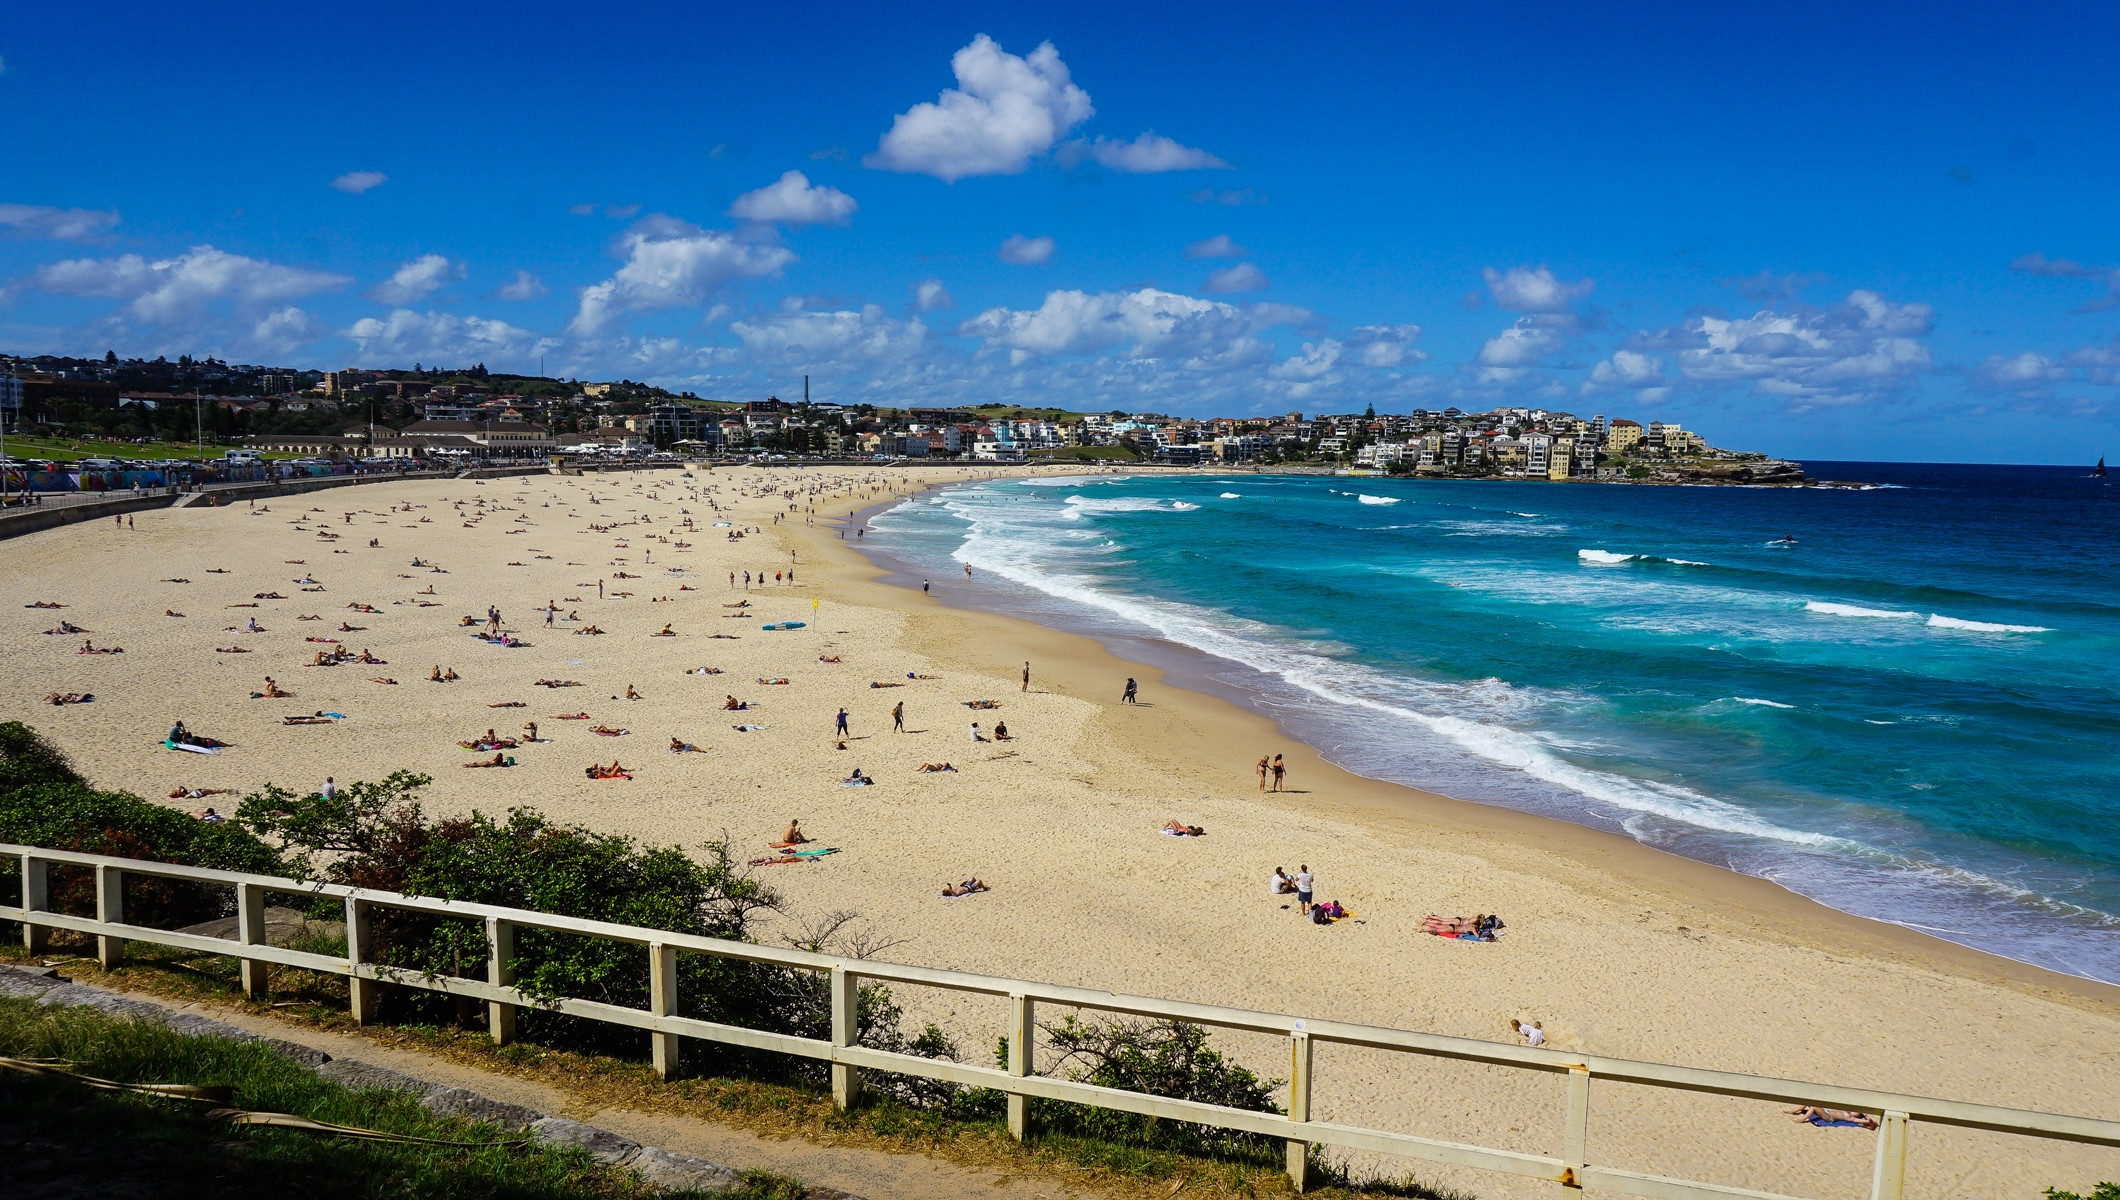 Famous Bondi beach in Sydney